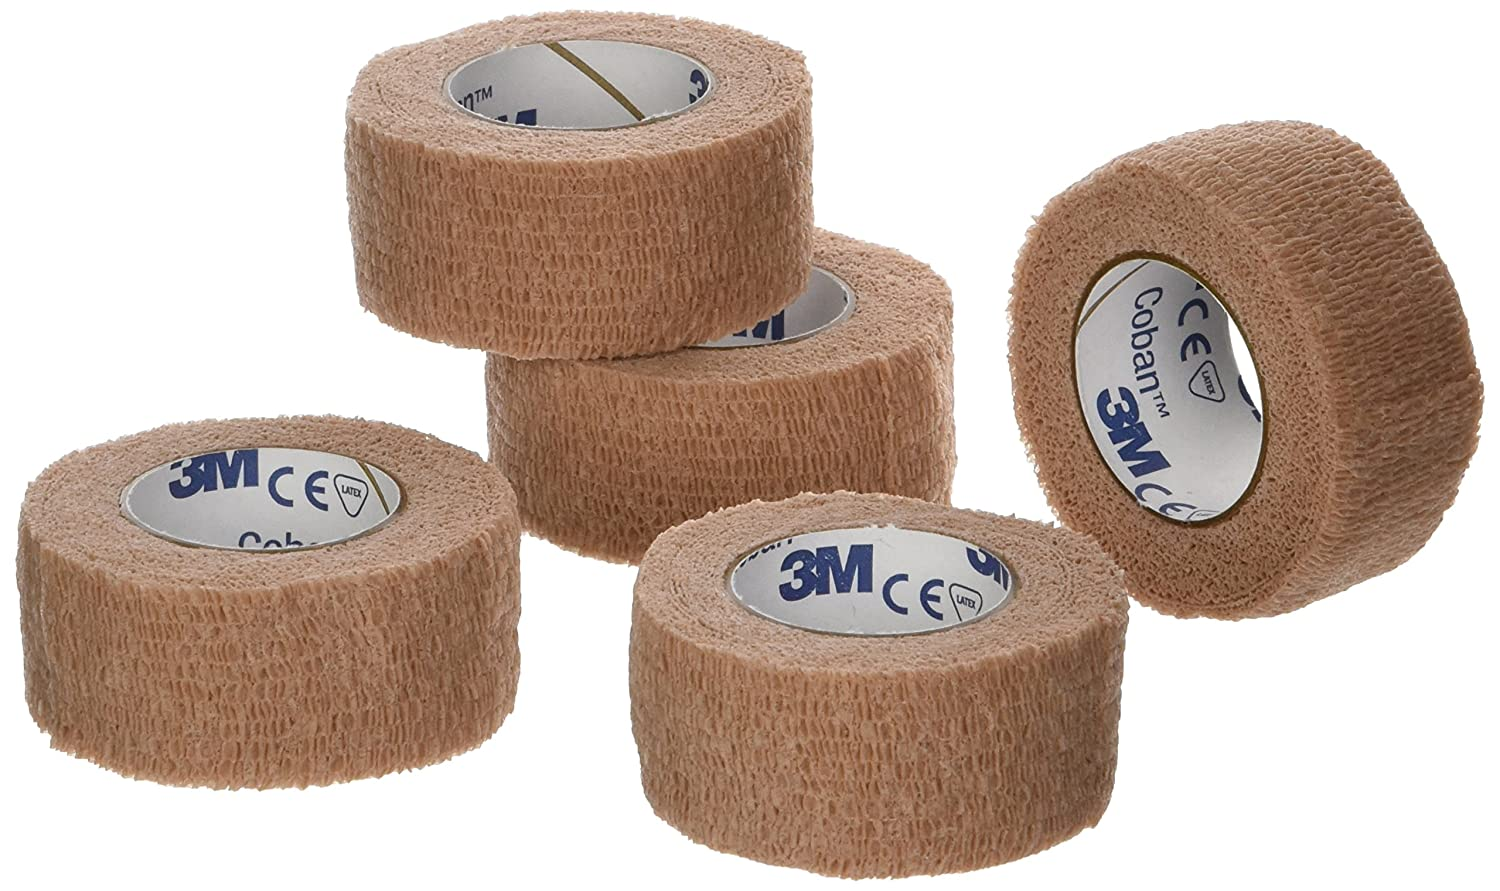 "3M Coban Self- Adherent Wrap, 1""x 5yds, Pack of 5 Rolls"